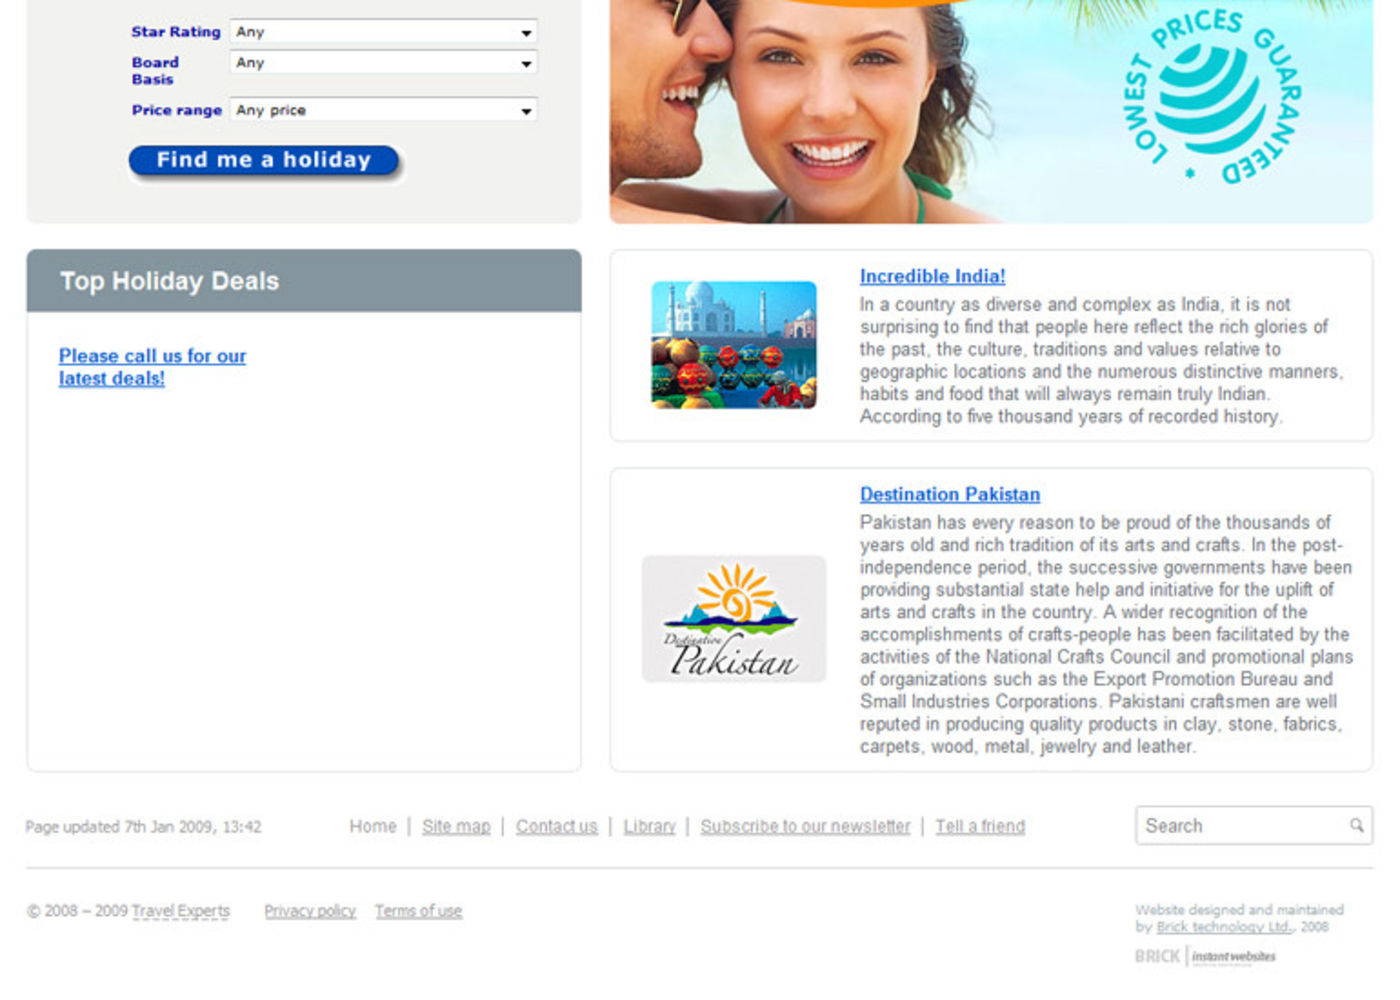 Travel Experts Homepage footer